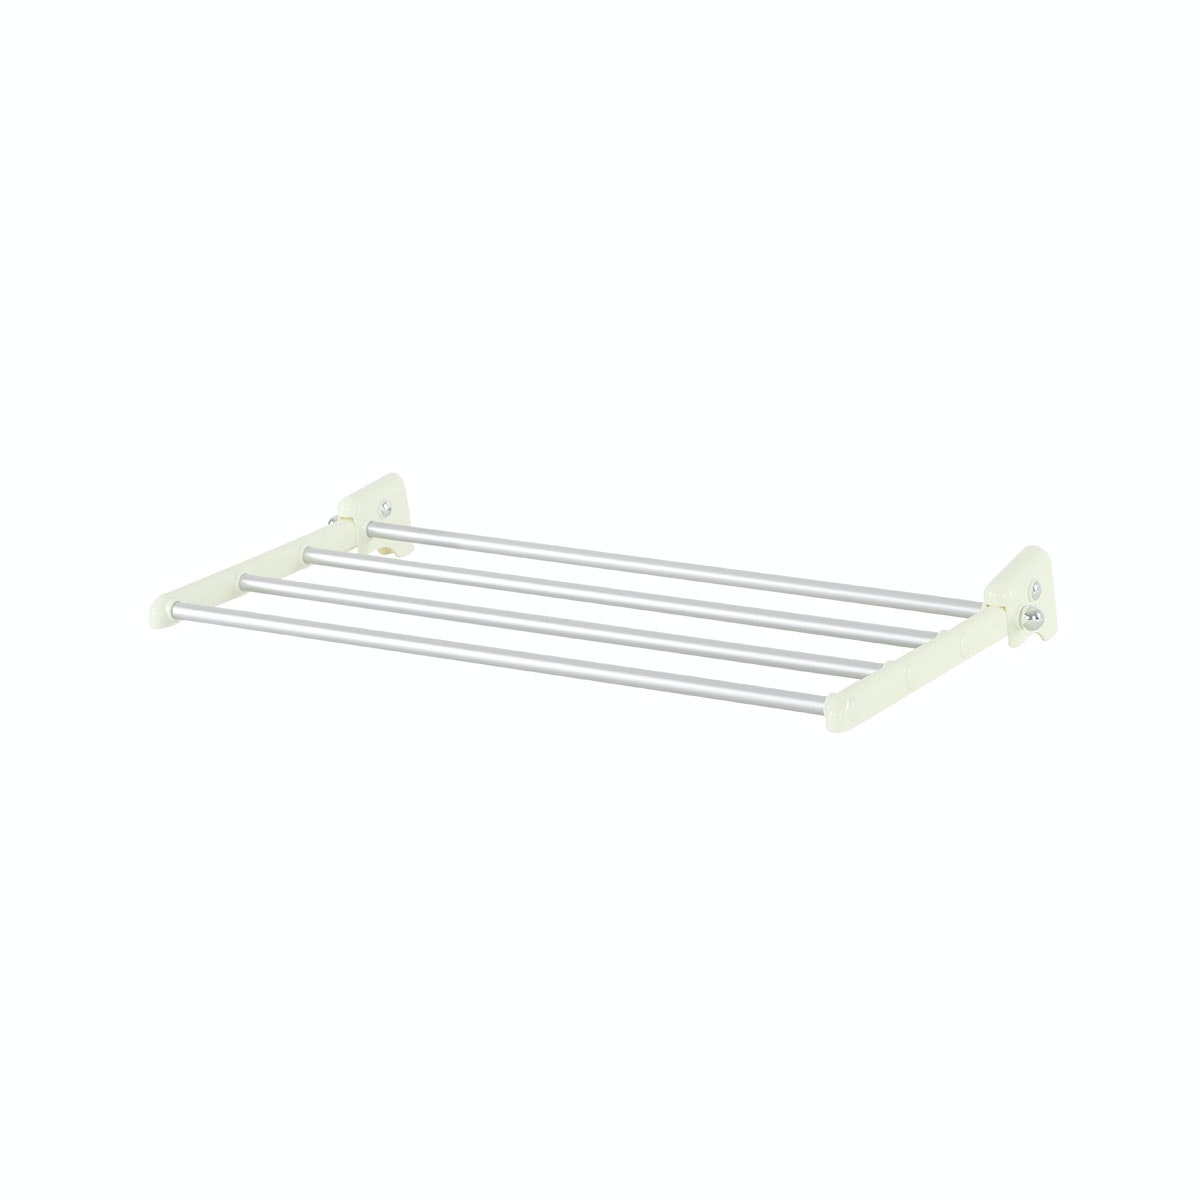 Mami1 Wall Towel Rack M-664